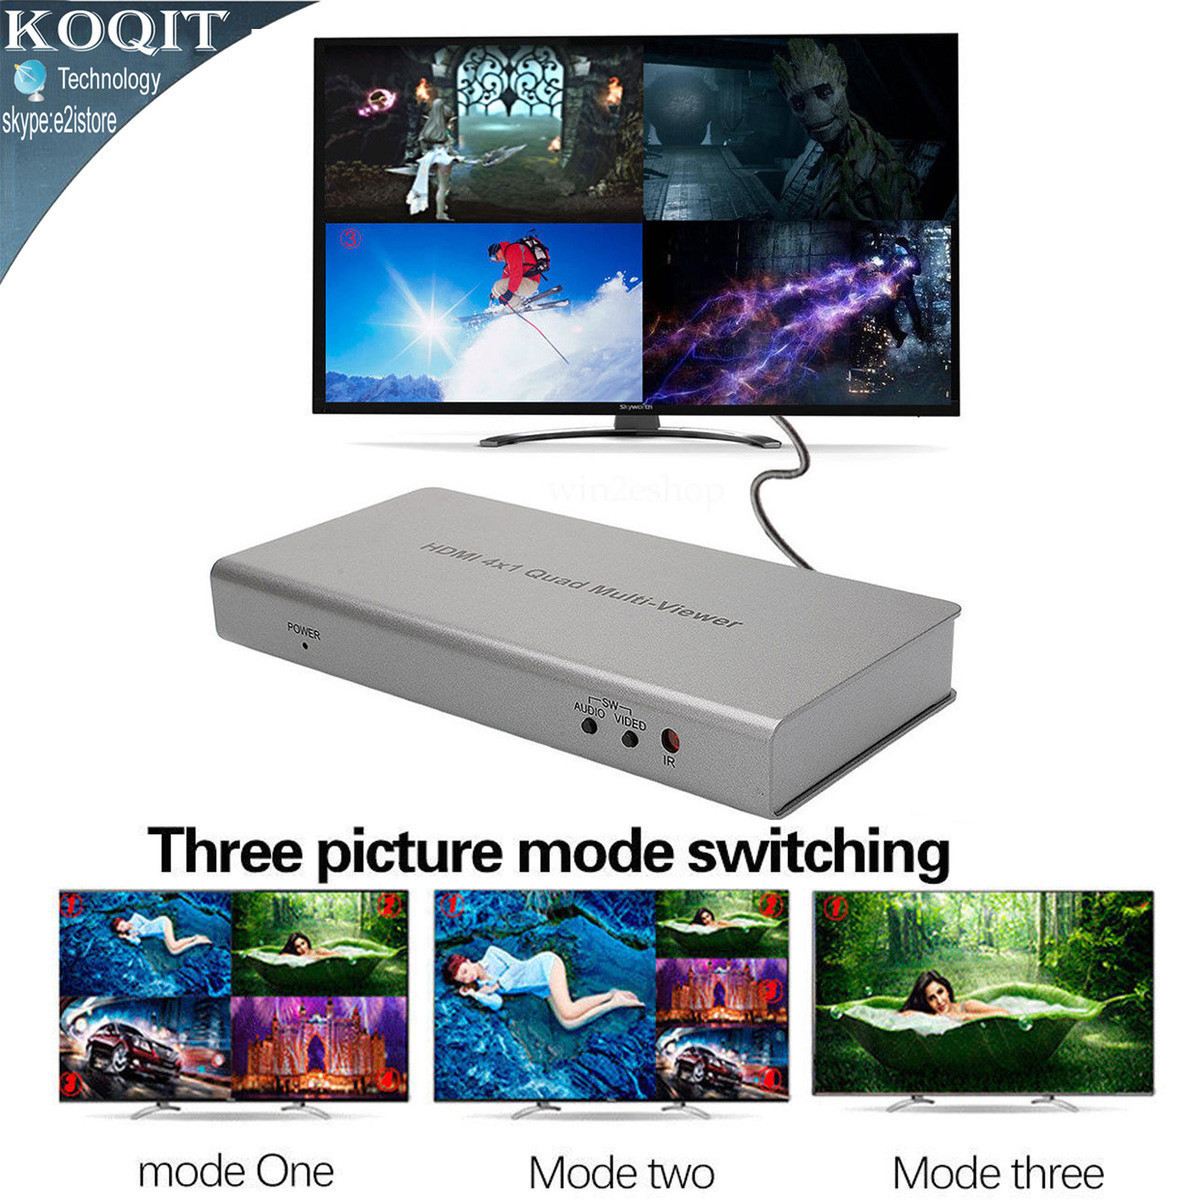 4X1 HDMI Multi-viewer HDMI Quad Screen Real Time Multiviewer with HDMI seamless Switcher function full 1080P&3D best price full color led display outdoor controller dvi video switcher seamless switcher ams mvp508 for ts802d msd300